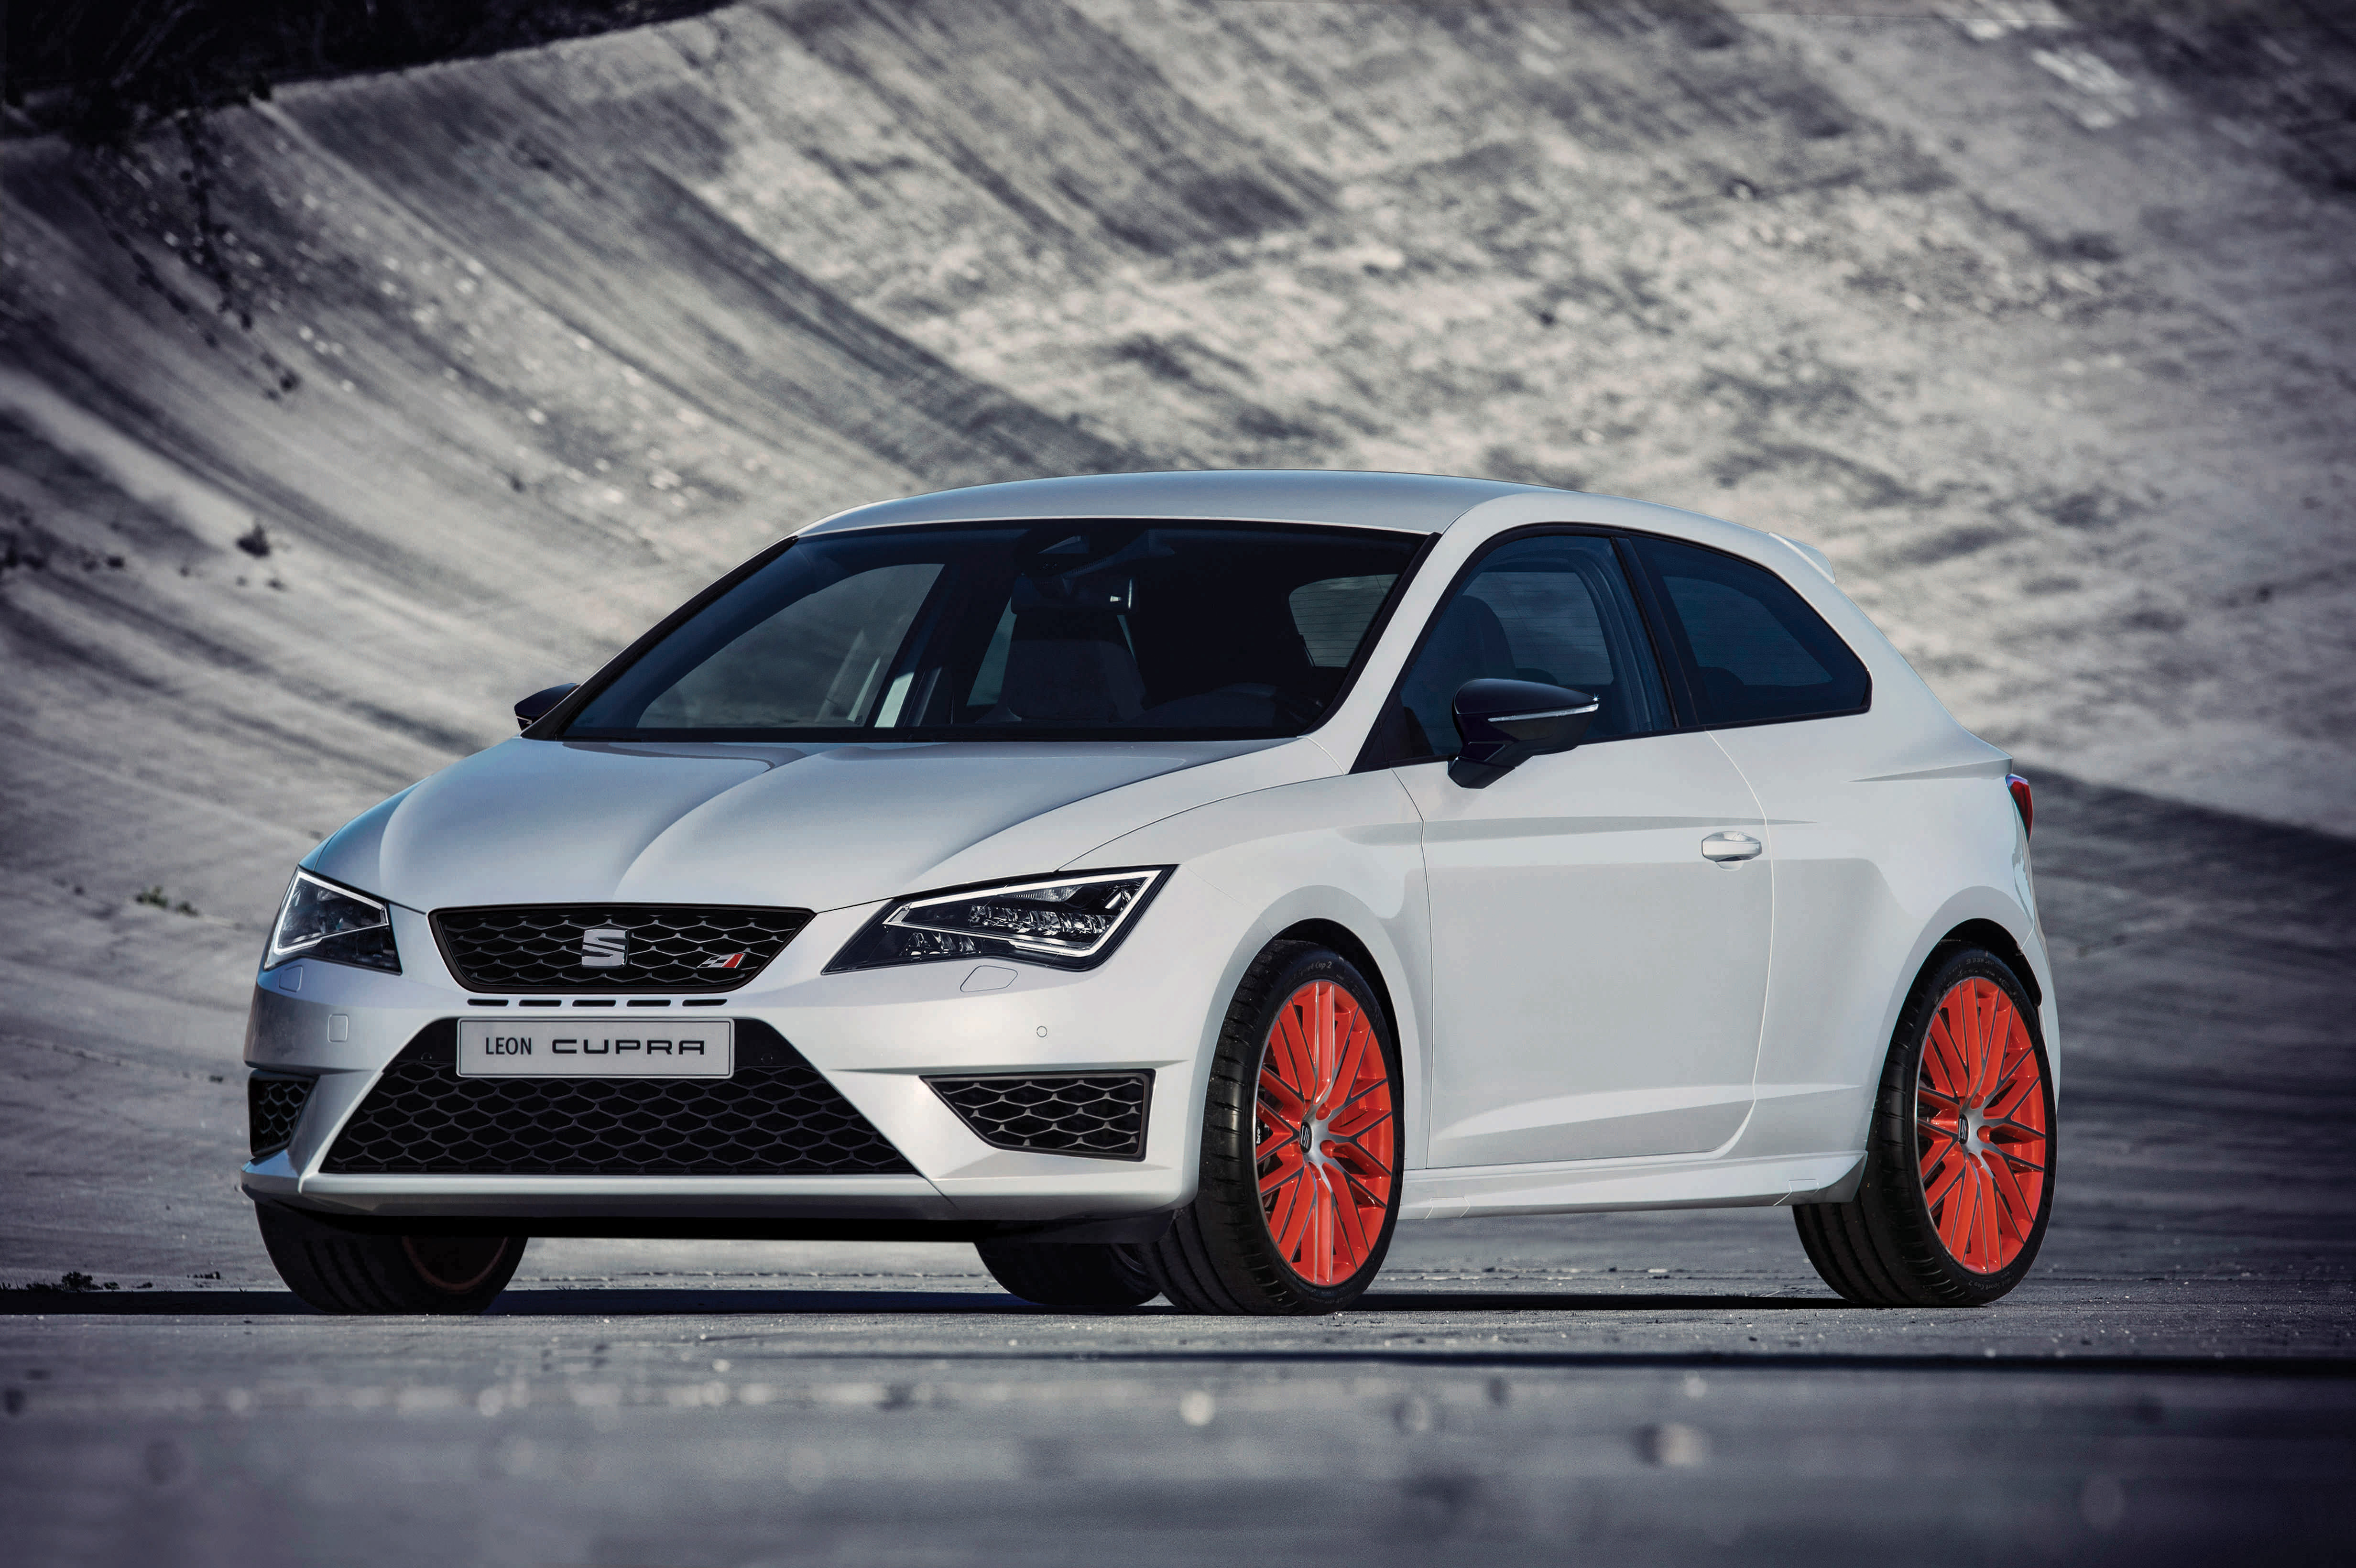 Leon Cupra Performance Pack